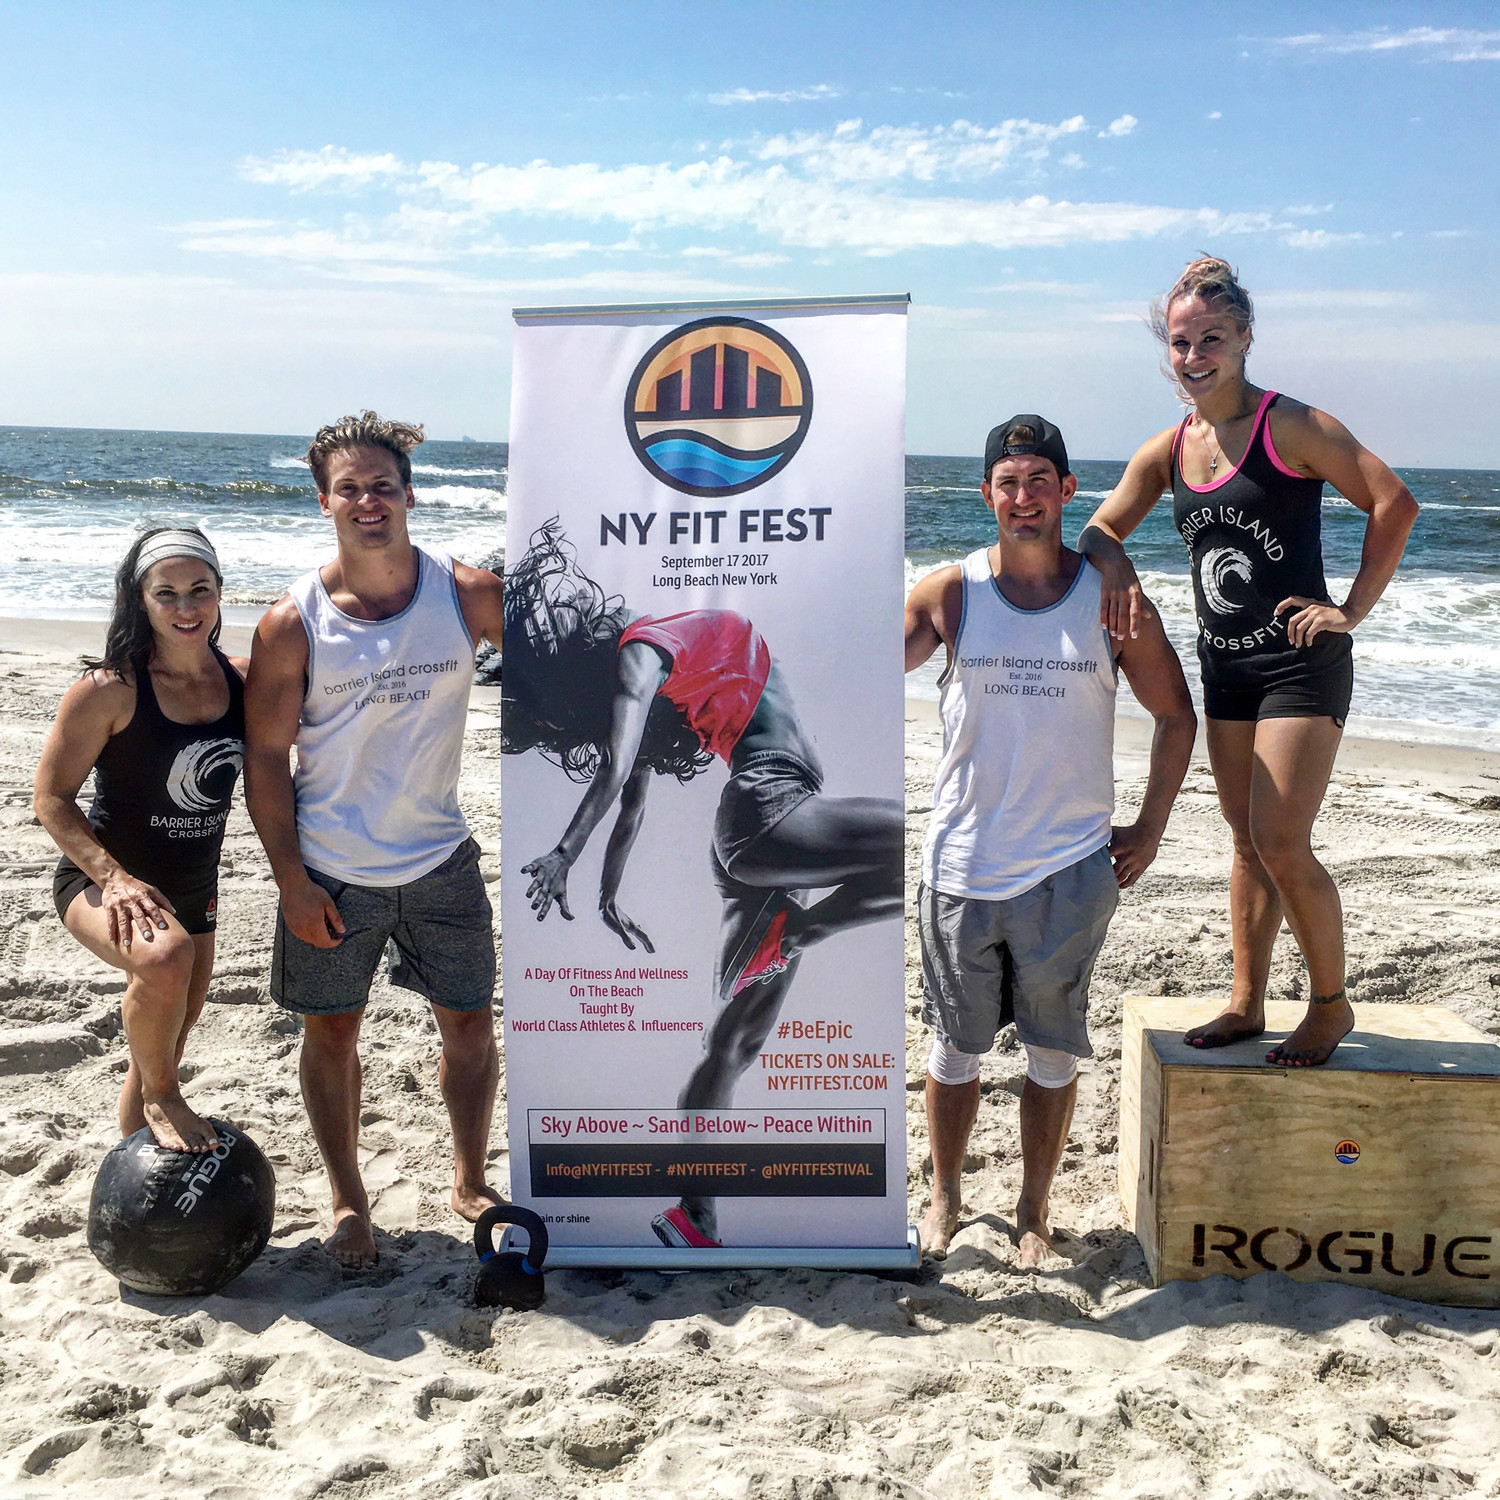 Barrier Island CrossFit owner Lori McMahon, left, with Charles Barber, Nick Mancuso and Lisa Bonsignore.